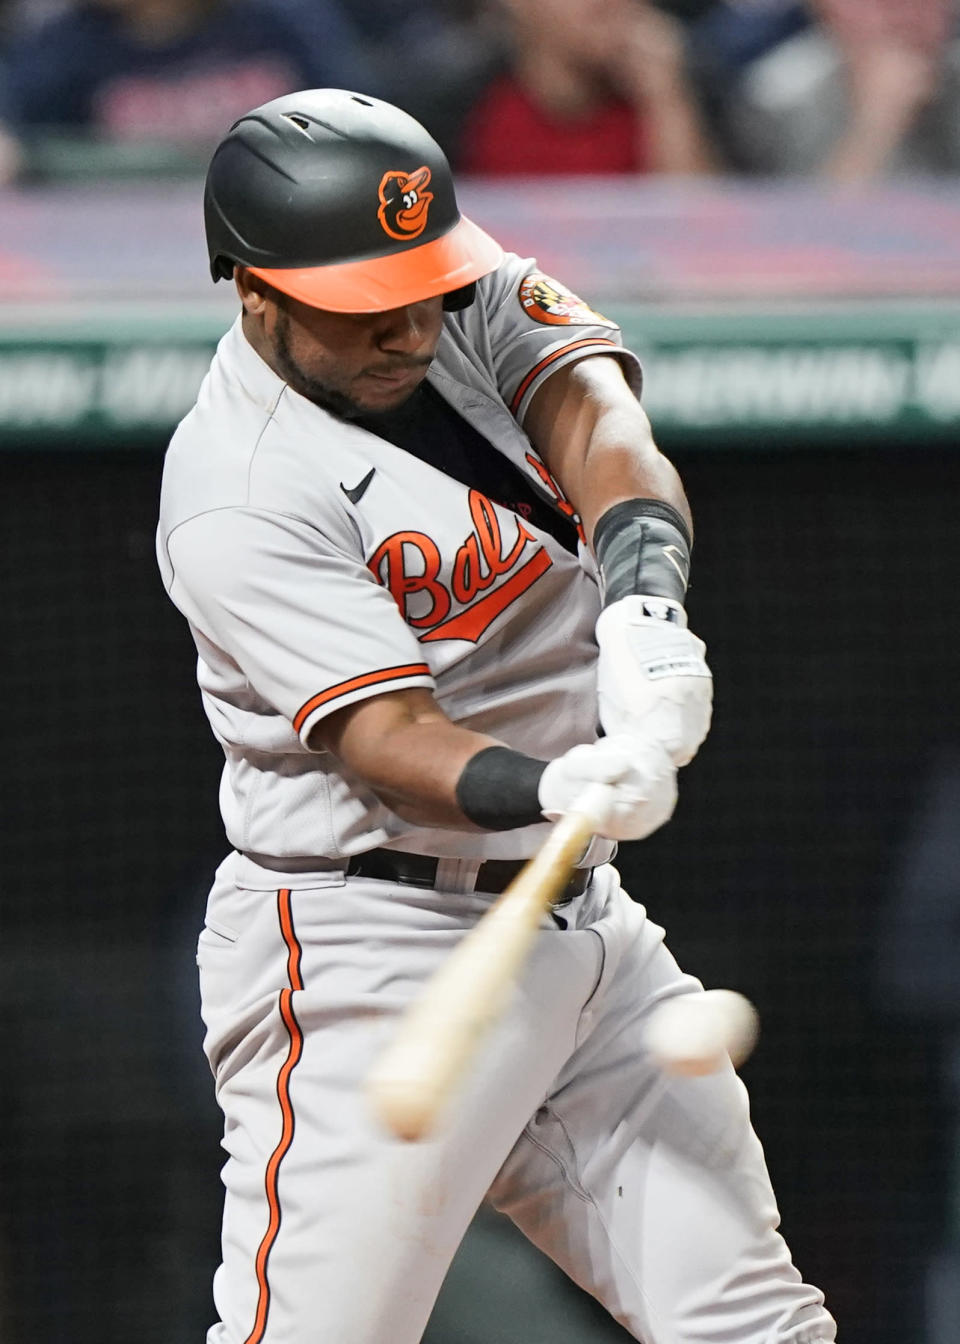 Baltimore Orioles' Maikel Franco hits an RBI single during the seventh inning of the team's baseball game against the Cleveland Indians, Wednesday, June 16, 2021, in Cleveland. (AP Photo/Tony Dejak)